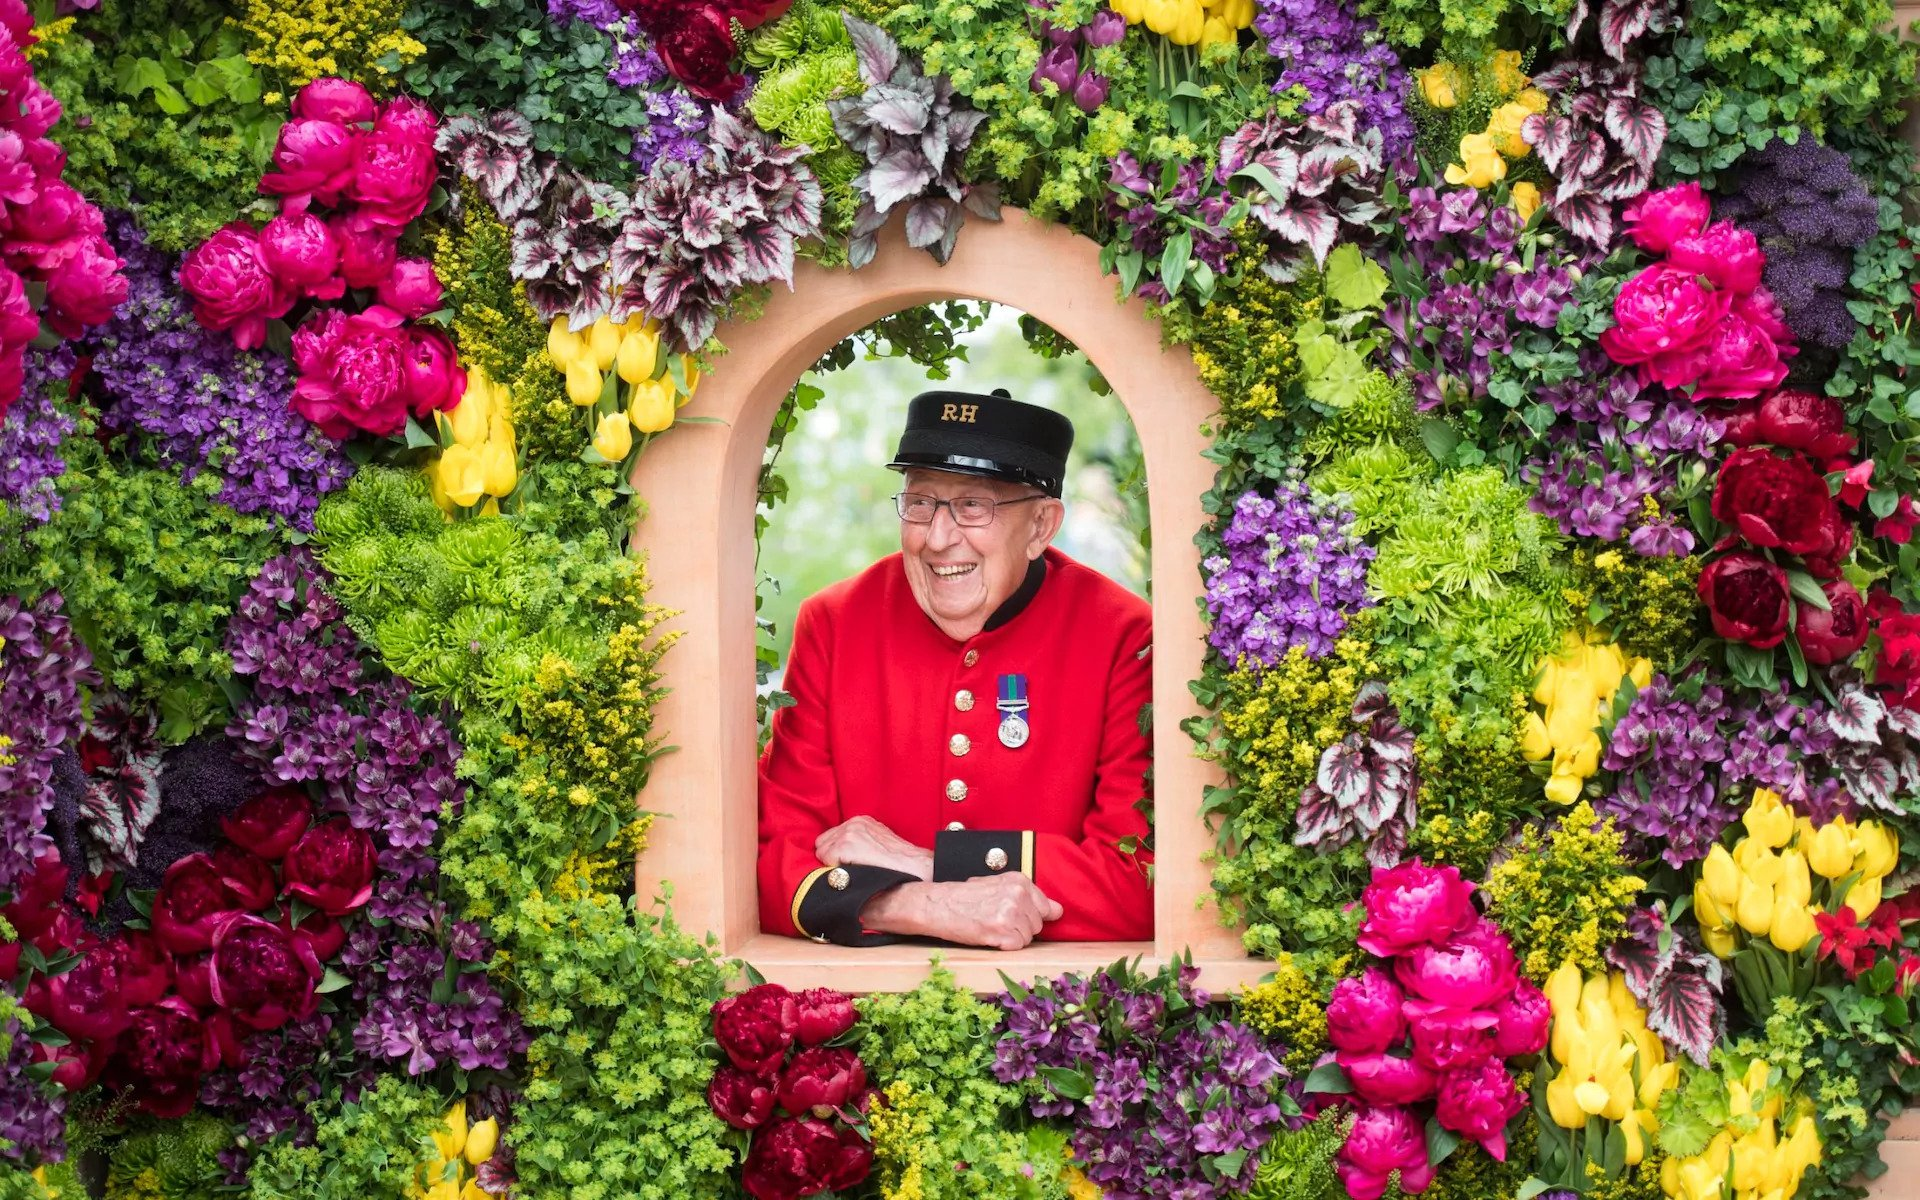 Chelsea Pensioner Ron Wilkins enjoying the show CREDIT: PAUL GROVER